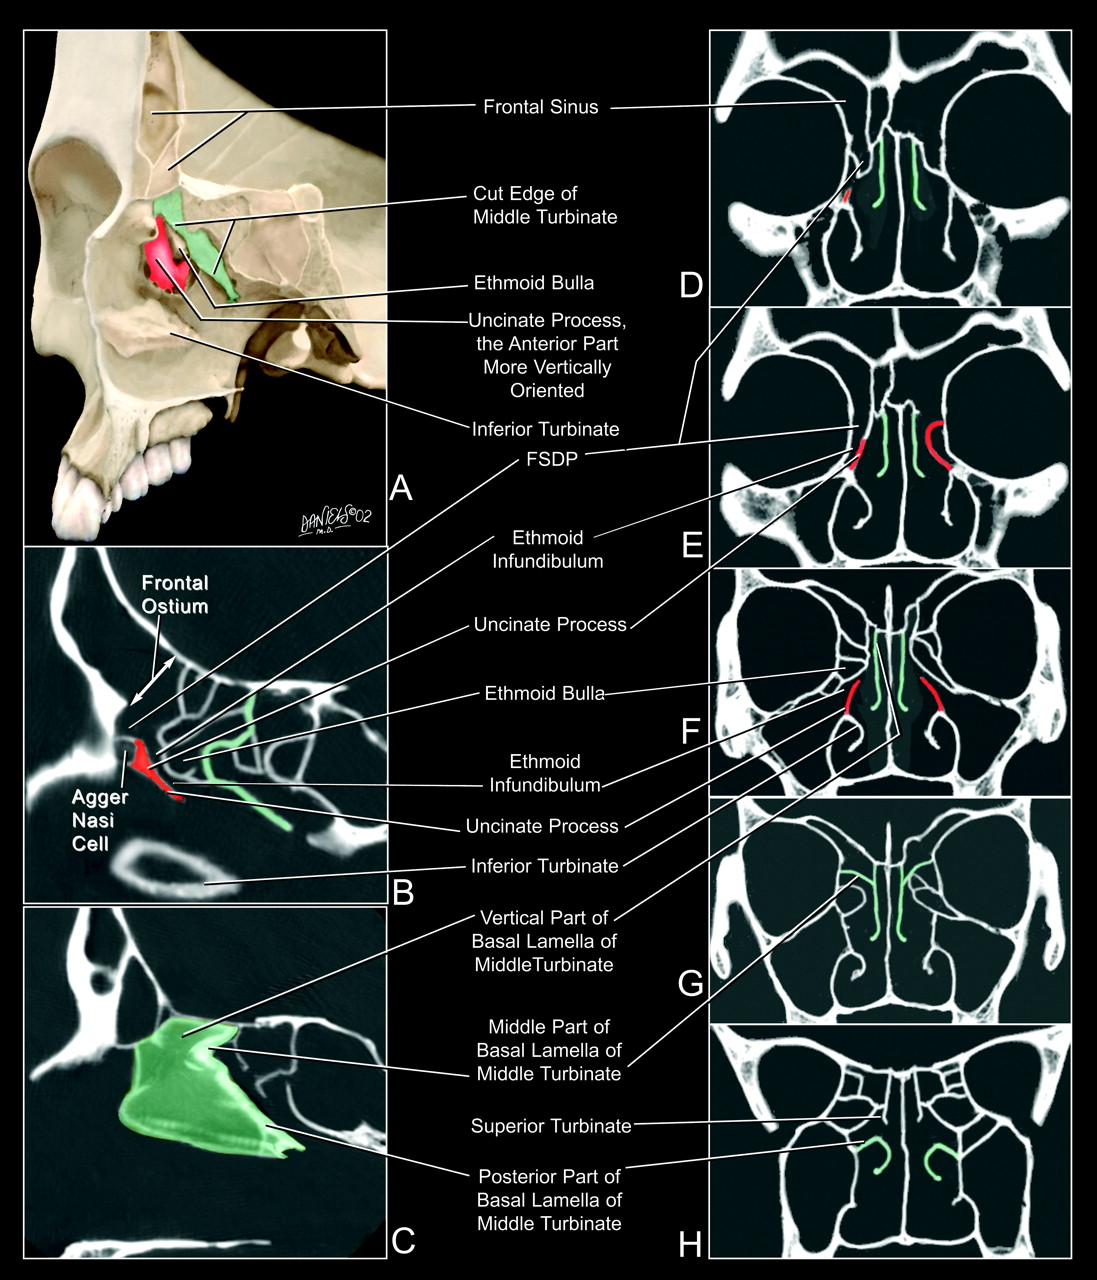 The Frontal Sinus Drainage Pathway and Related Structures